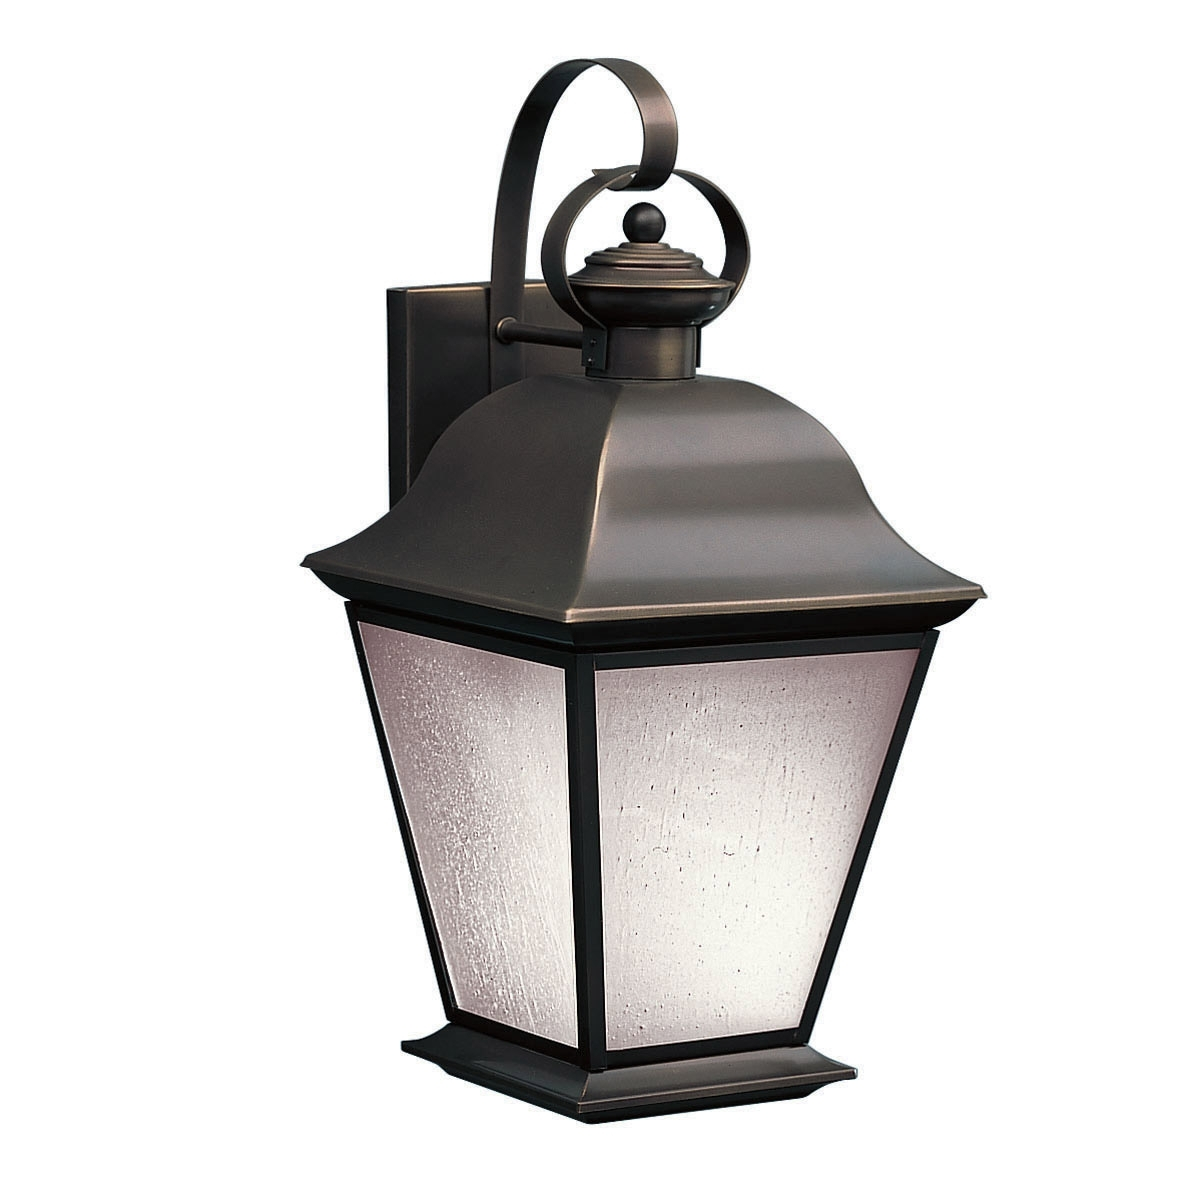 Best And Newest Light : Simple Uniques Minimalist Black Metal Hard Quality Outdoor Intended For Outdoor Wall Mount Led Light Fixtures (View 3 of 20)